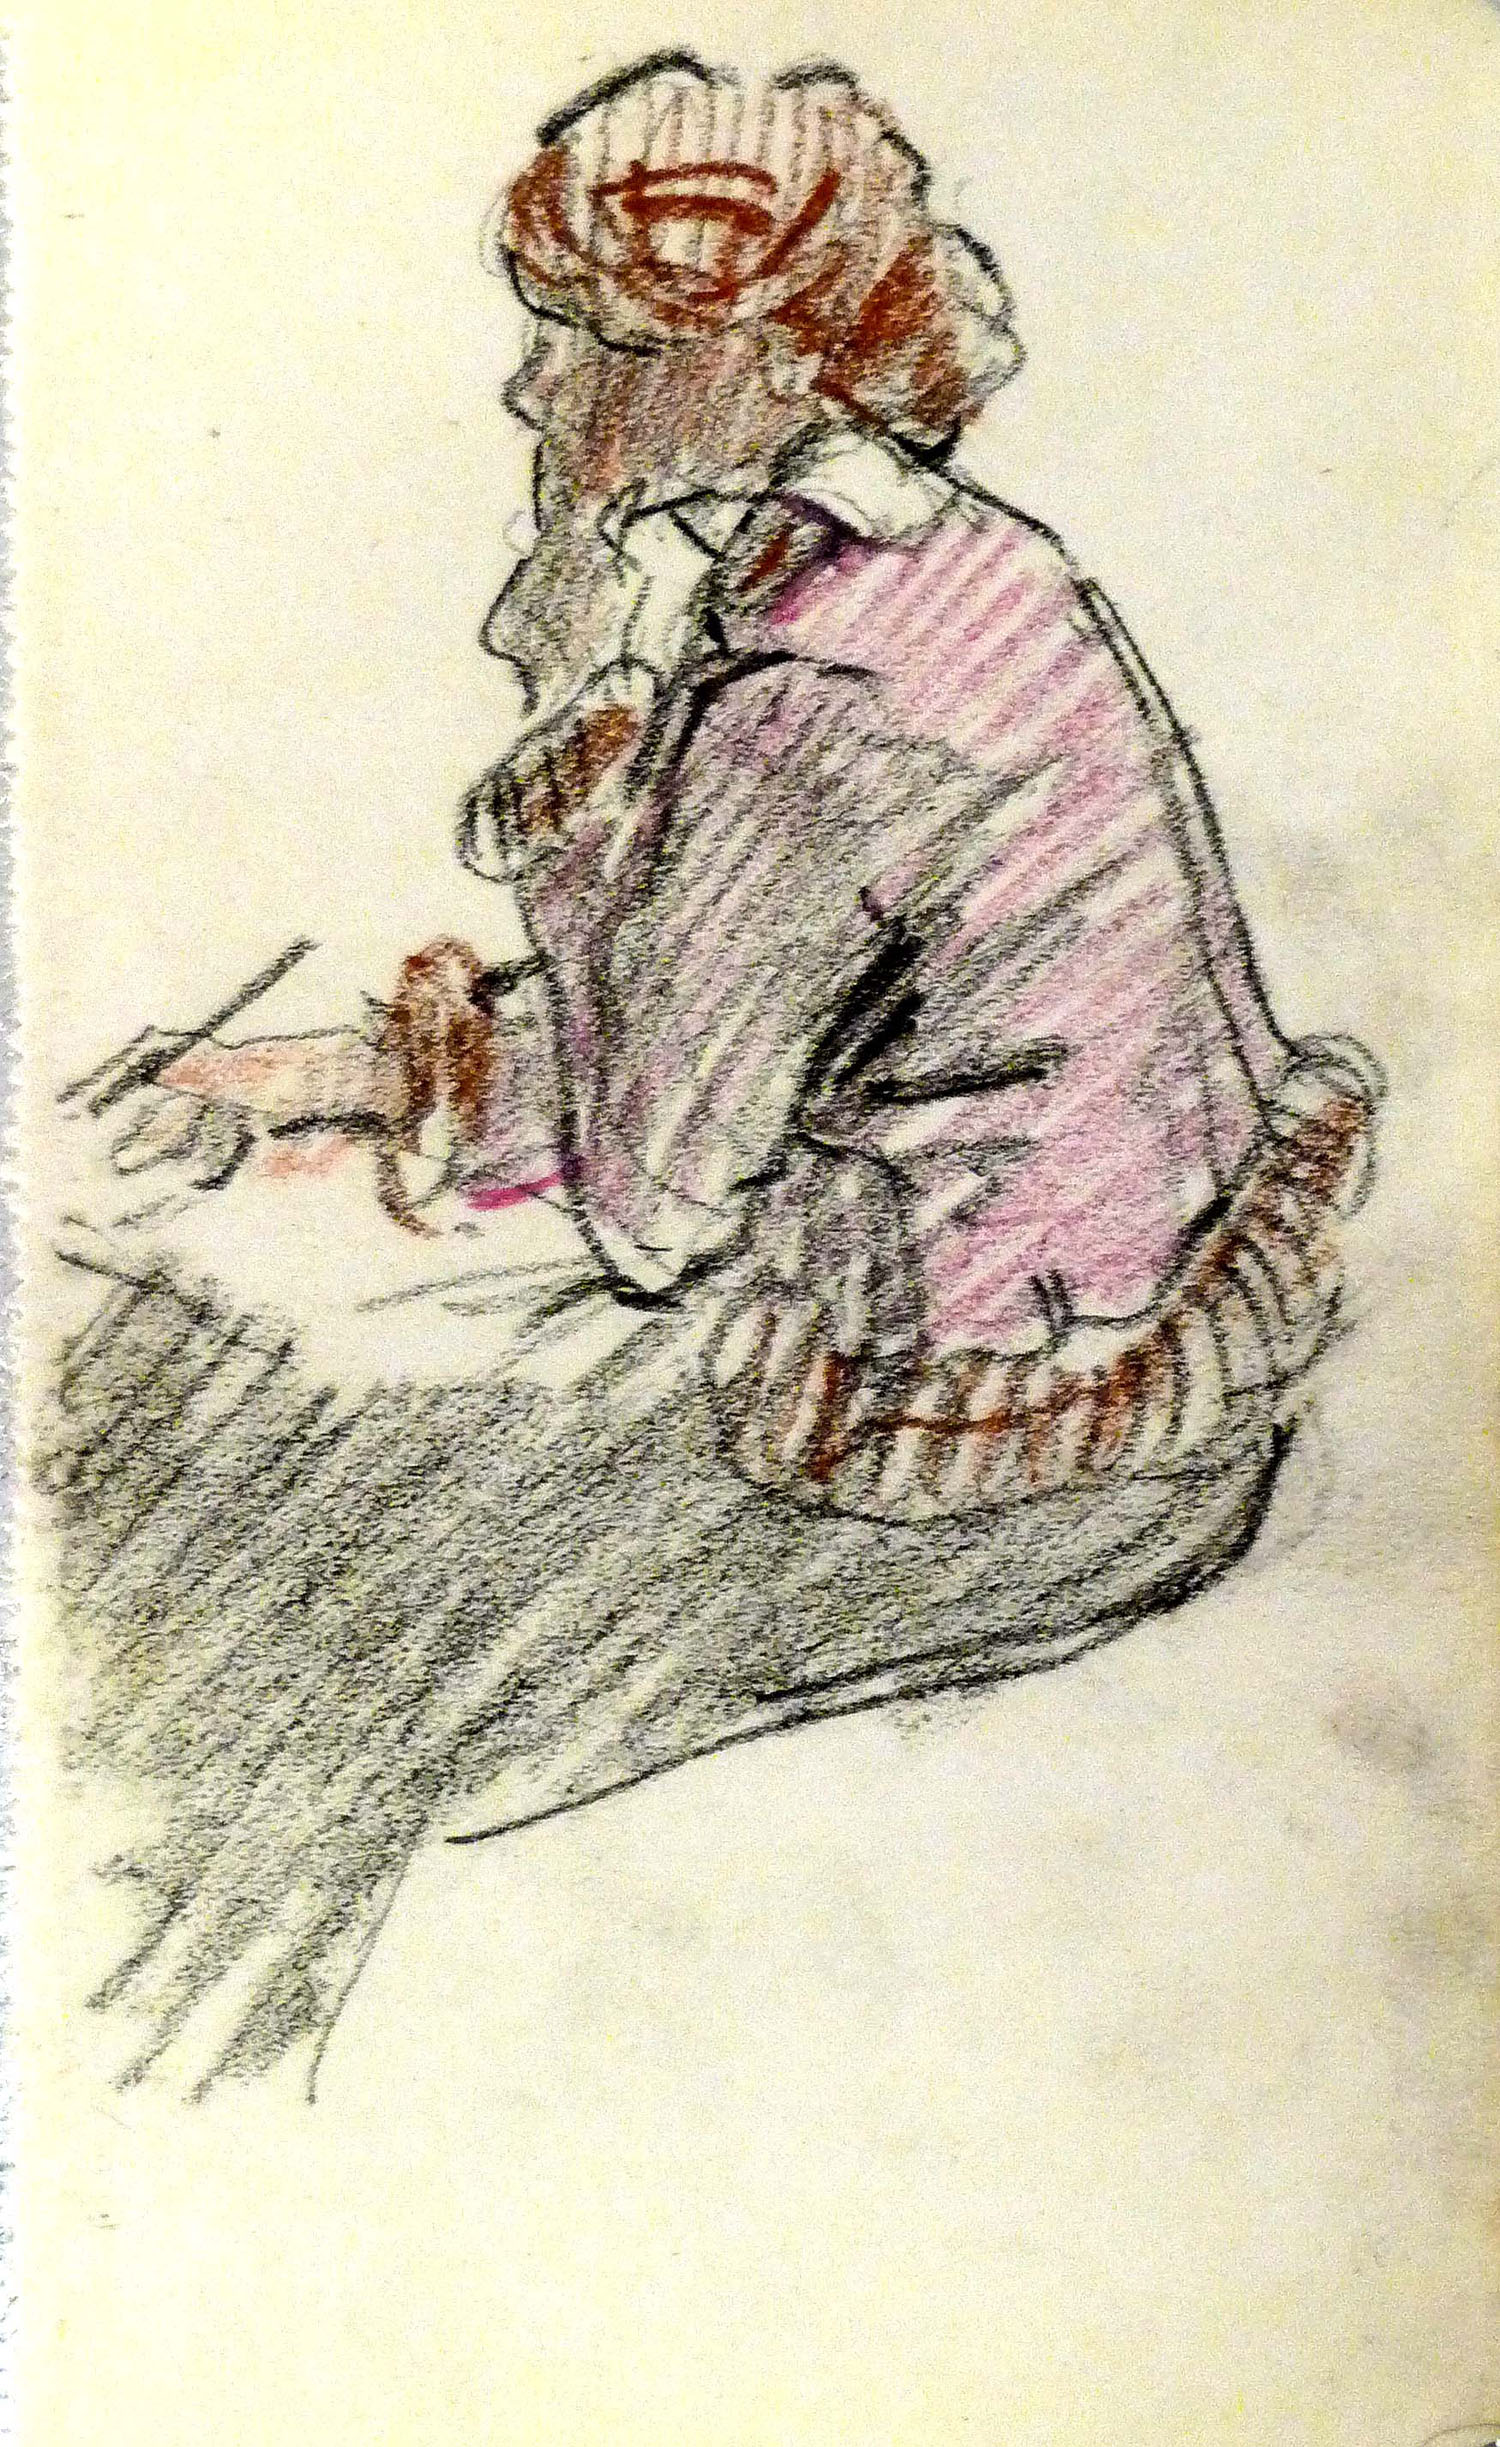 Mary Swanzy_-_Young Girl Sketching.jpg